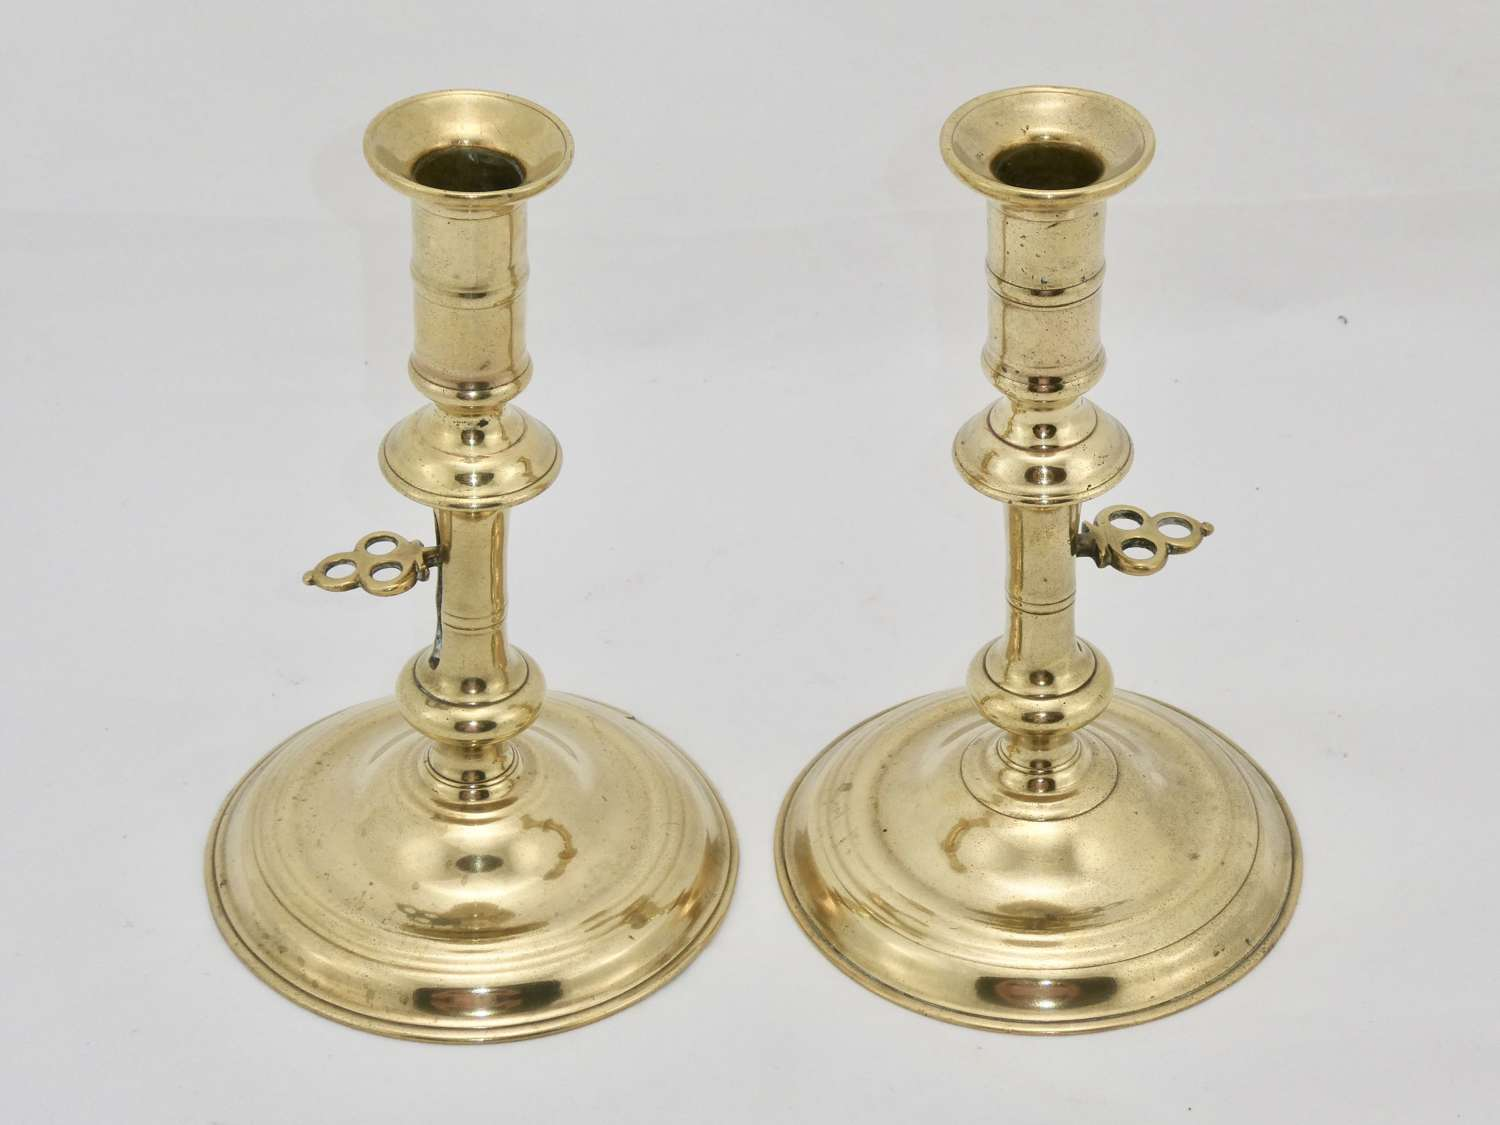 Pair of 18th Century Candlesticks